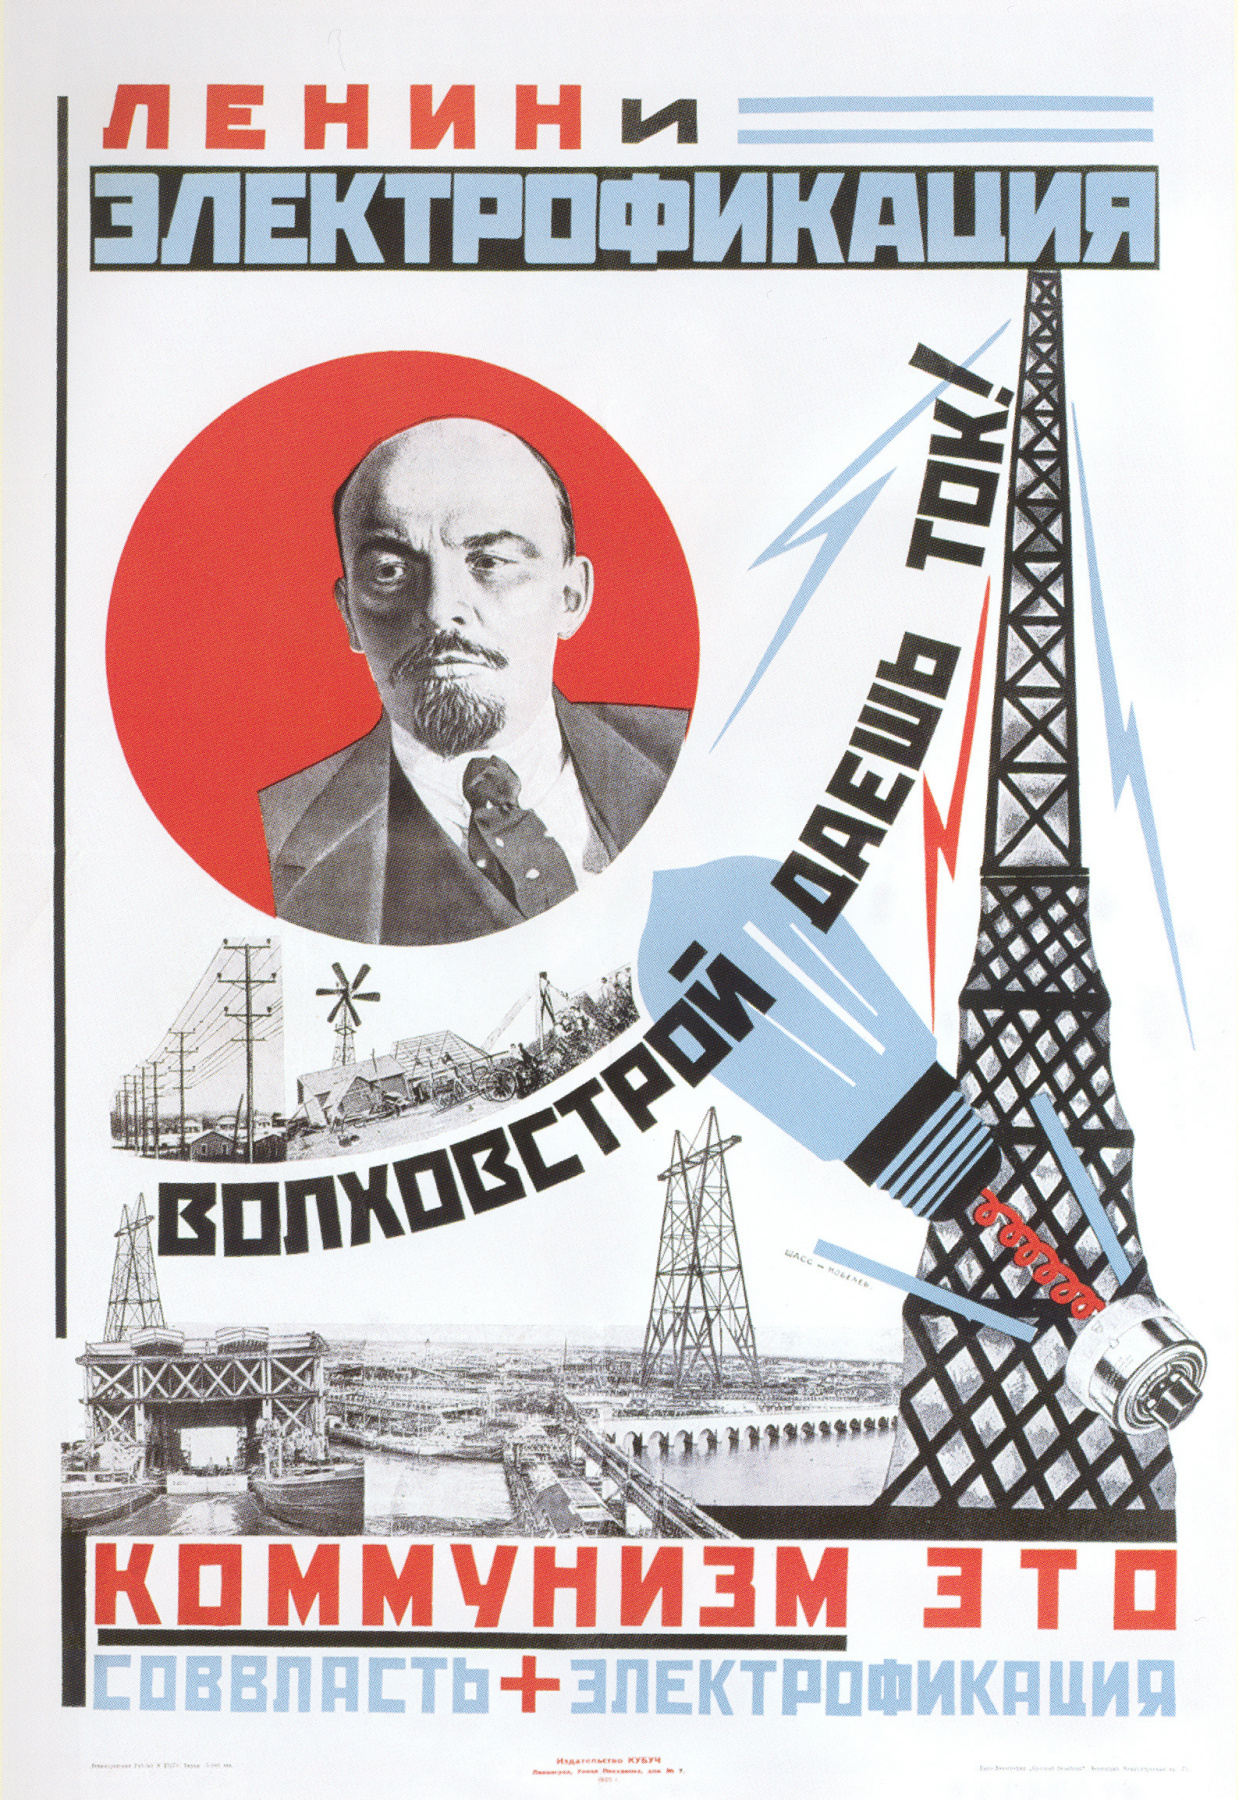 Unknown artist. Lenin and electrification